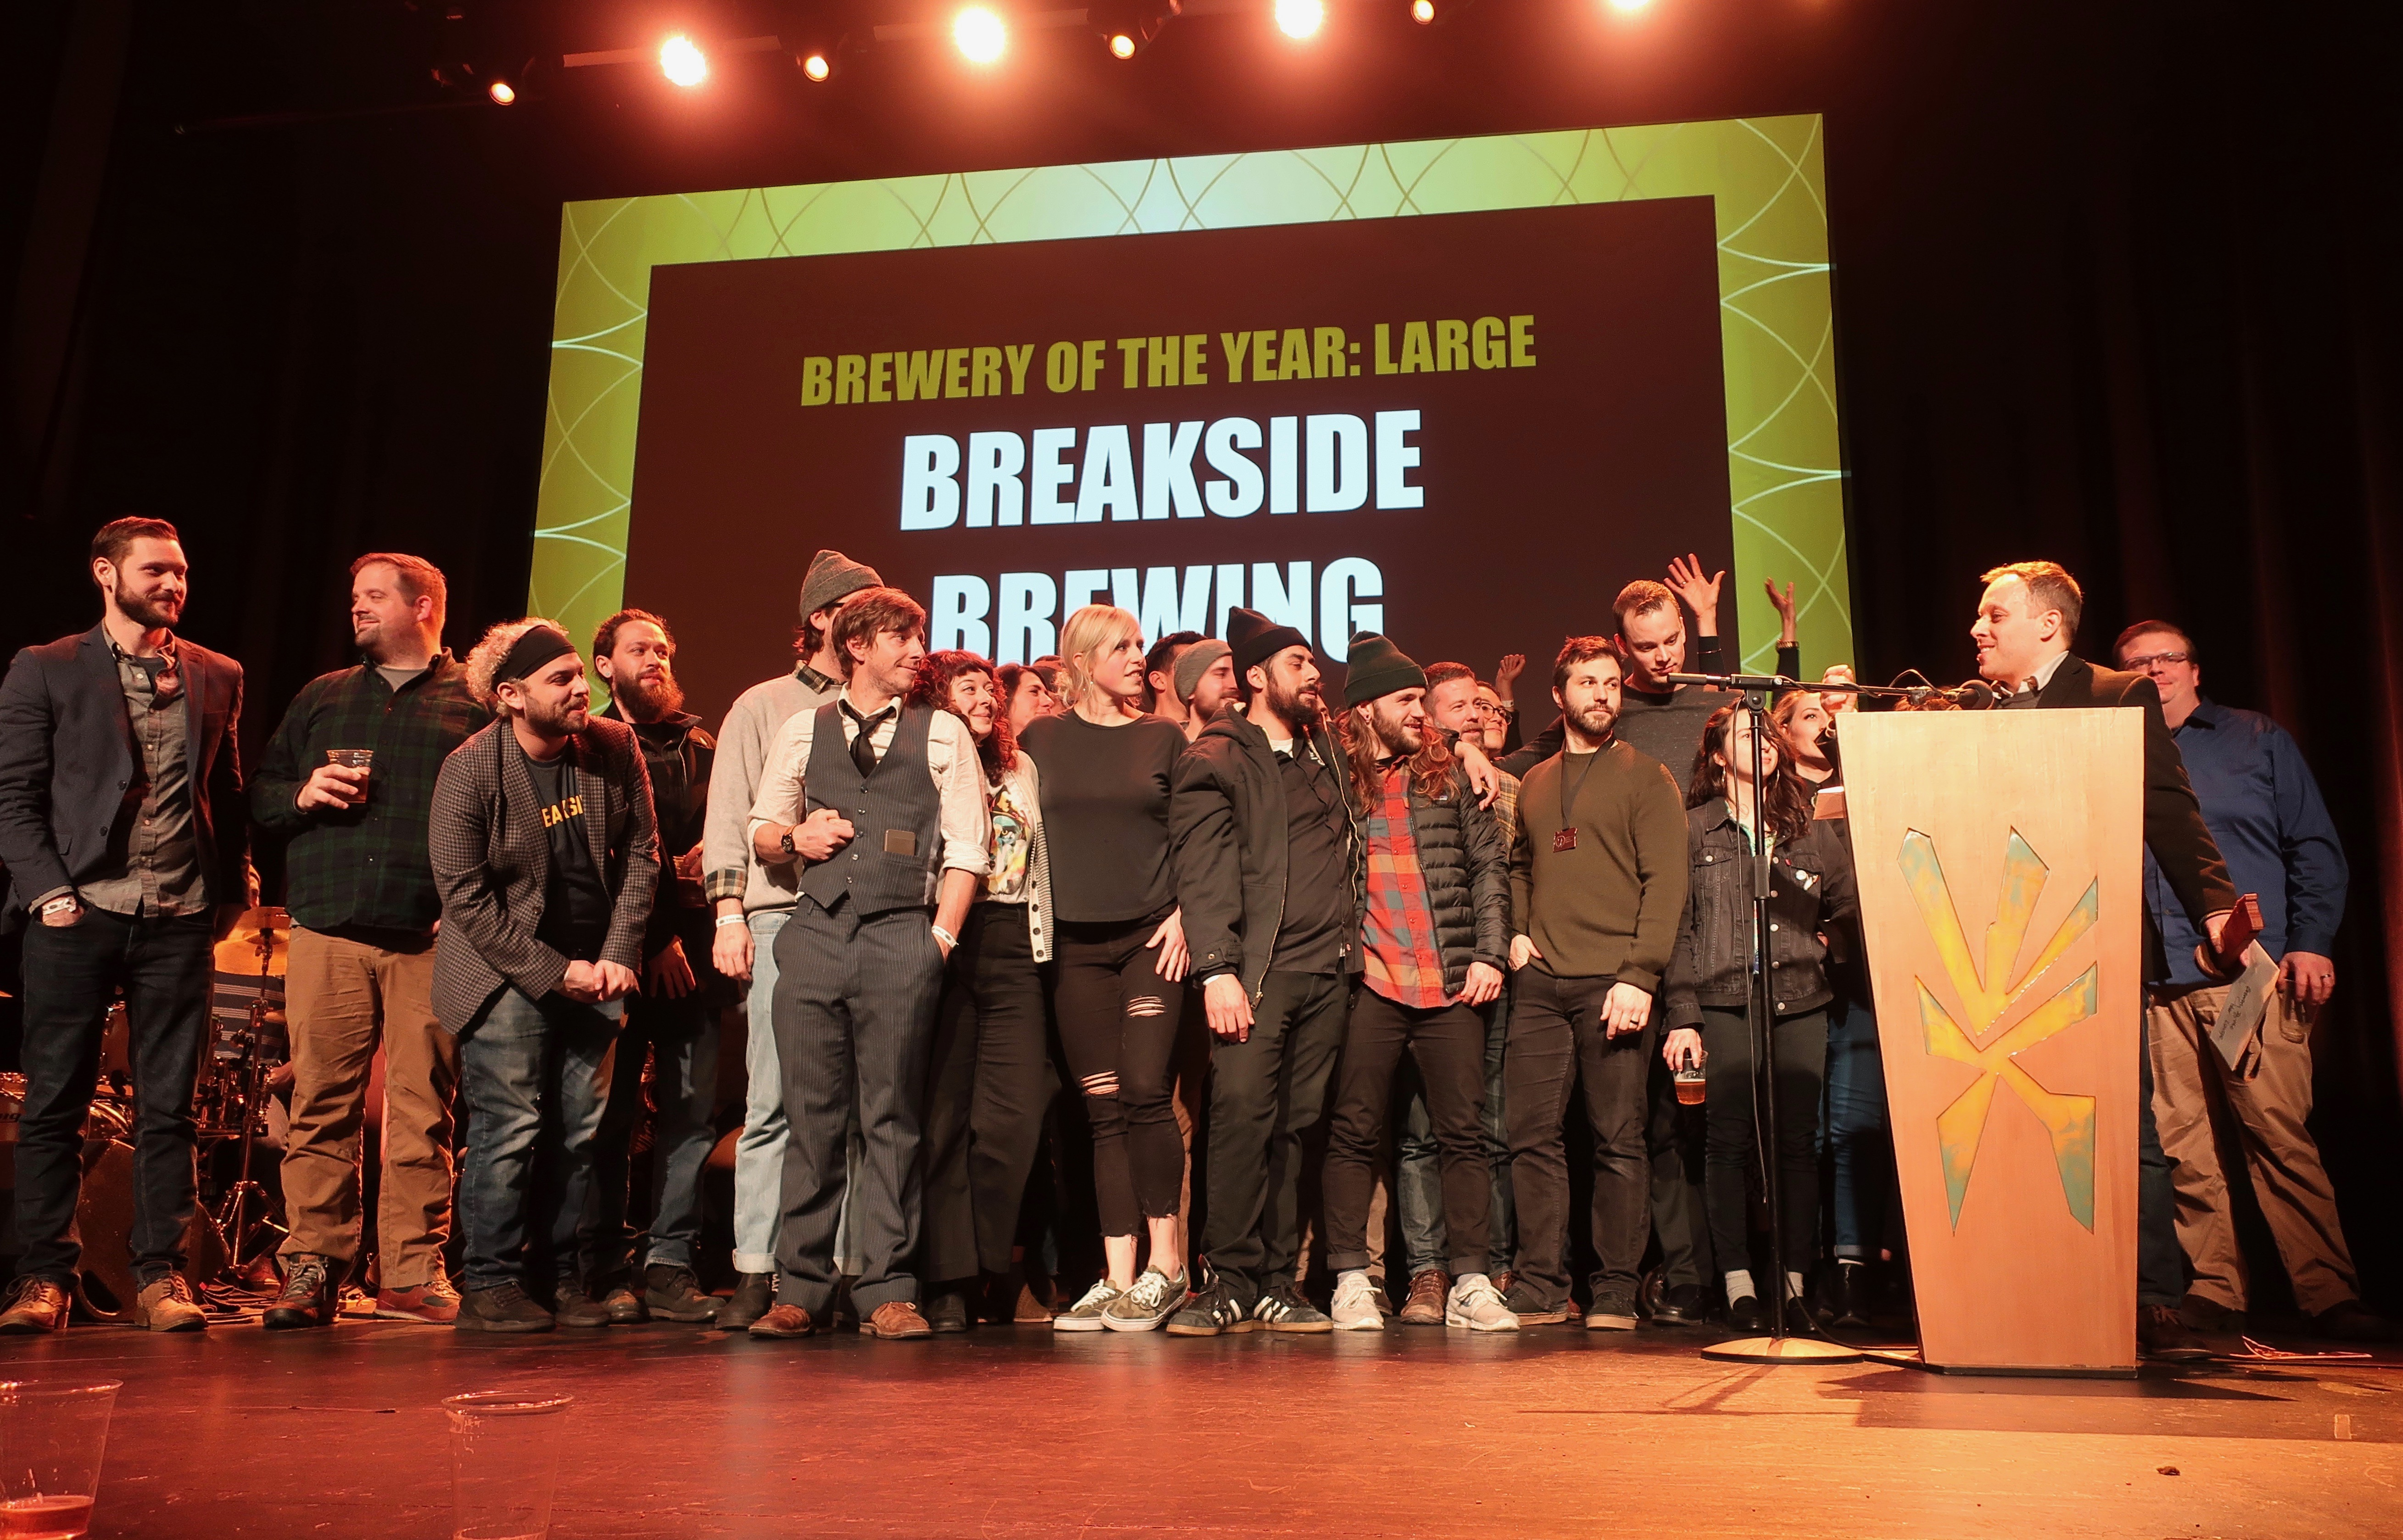 Breakside Brewery wins Brewery of the Year - Large at the 2019 Oregon Beer Awards.